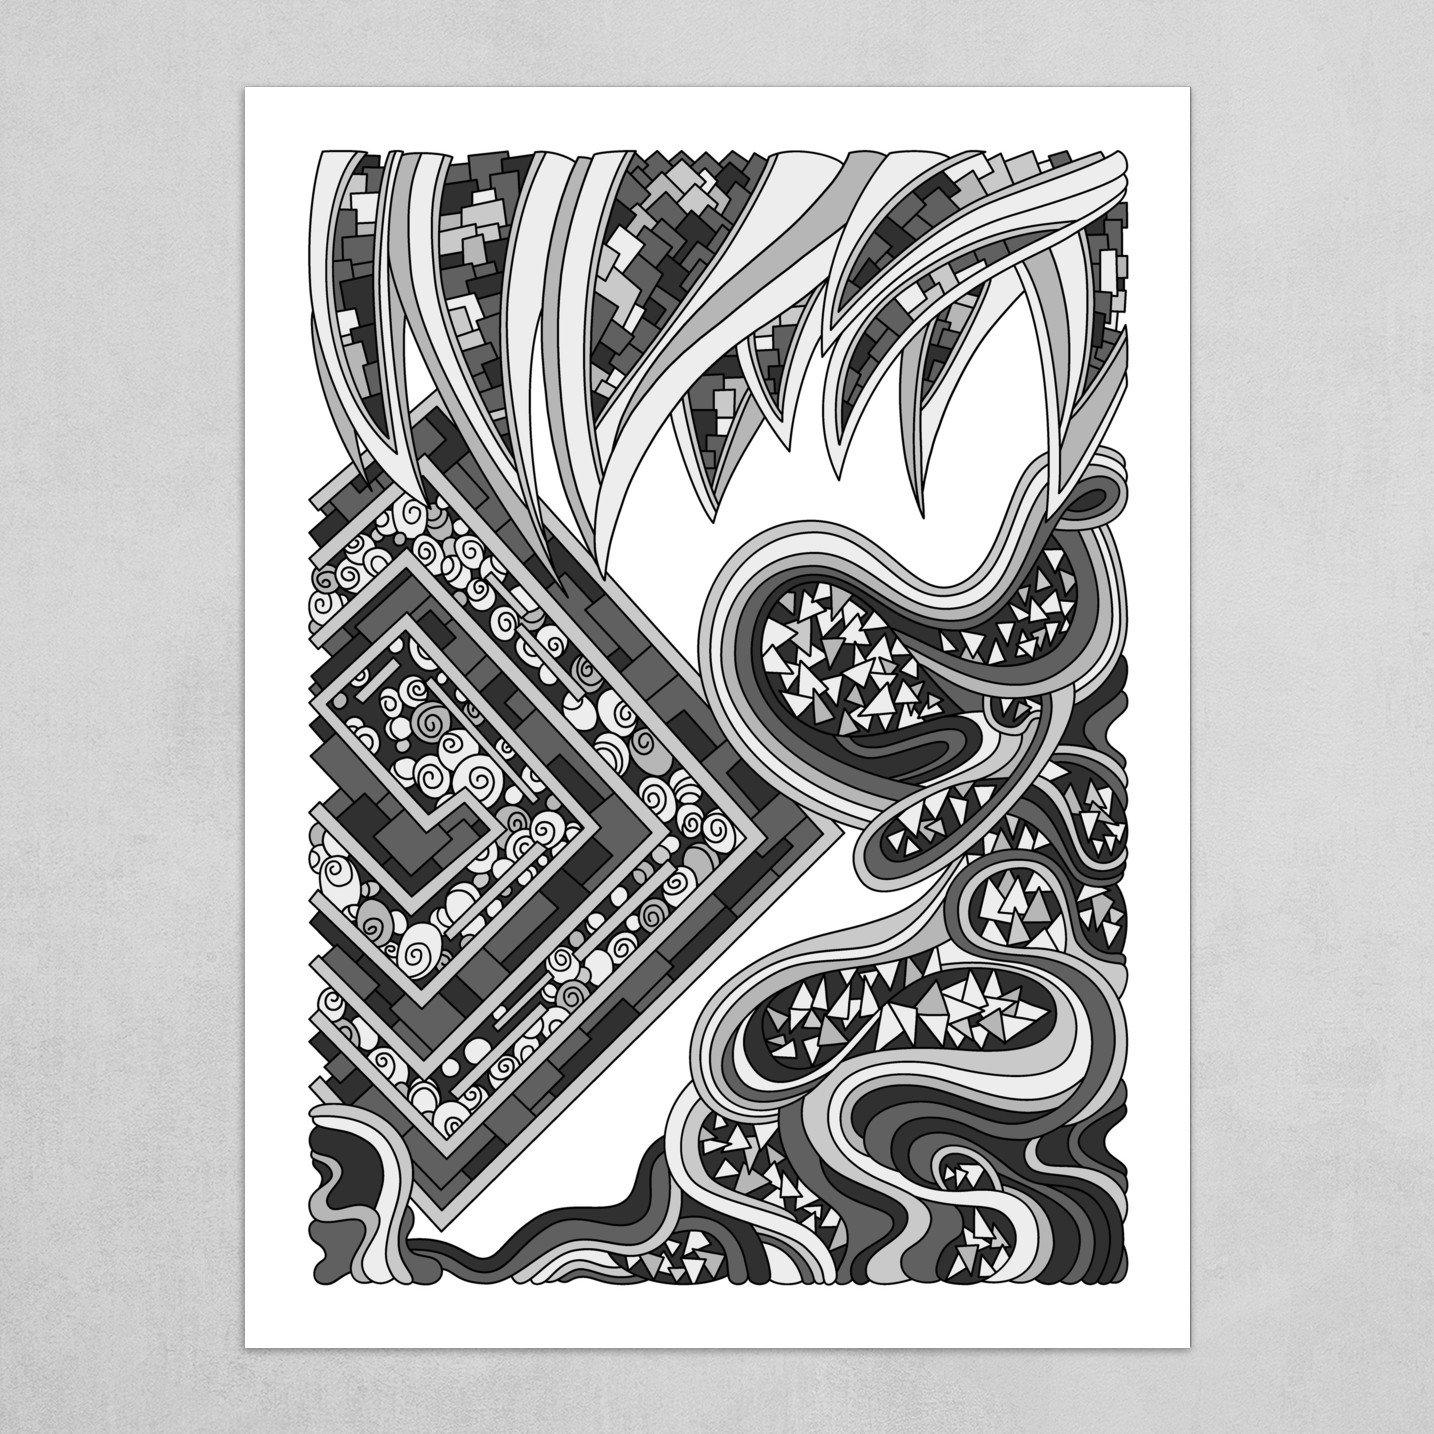 Wandering Abstract Line Art 47: Grayscale